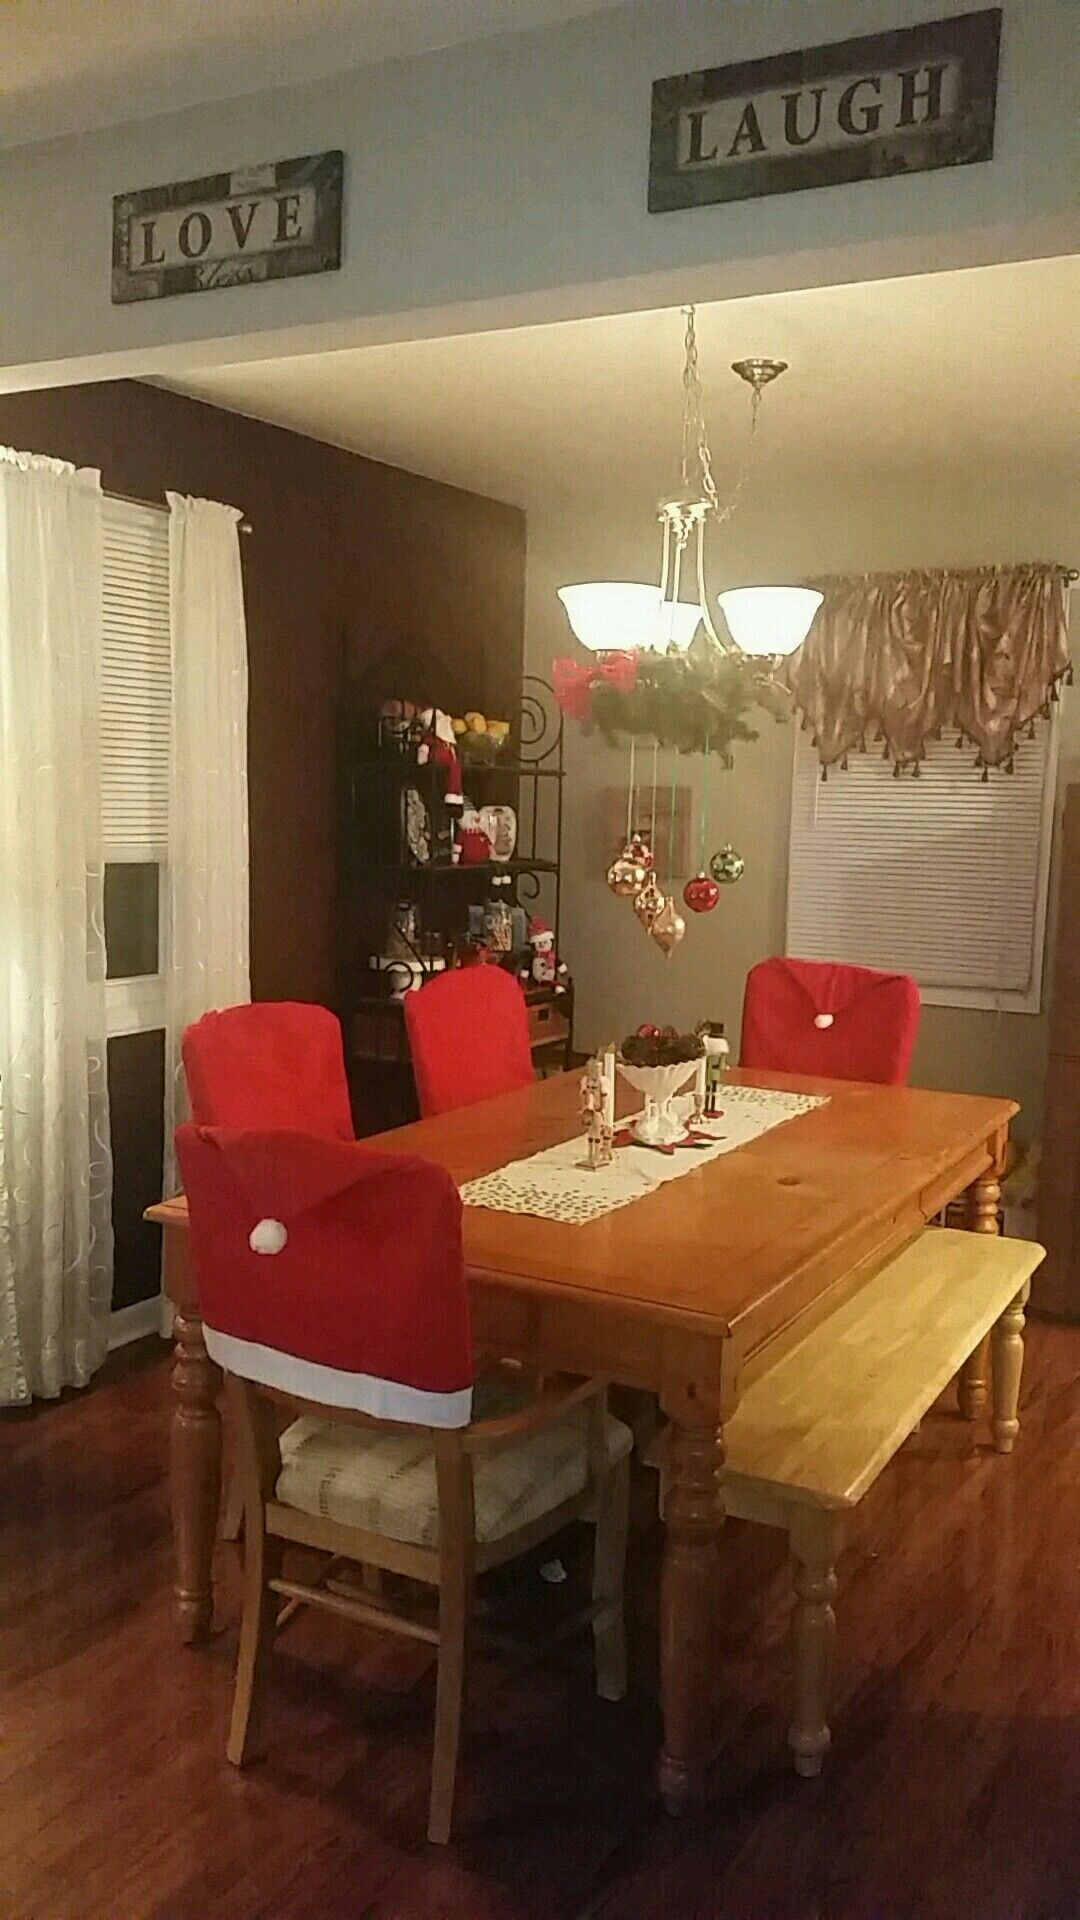 Mt dining room. Cover for chairs from dollar store Chair